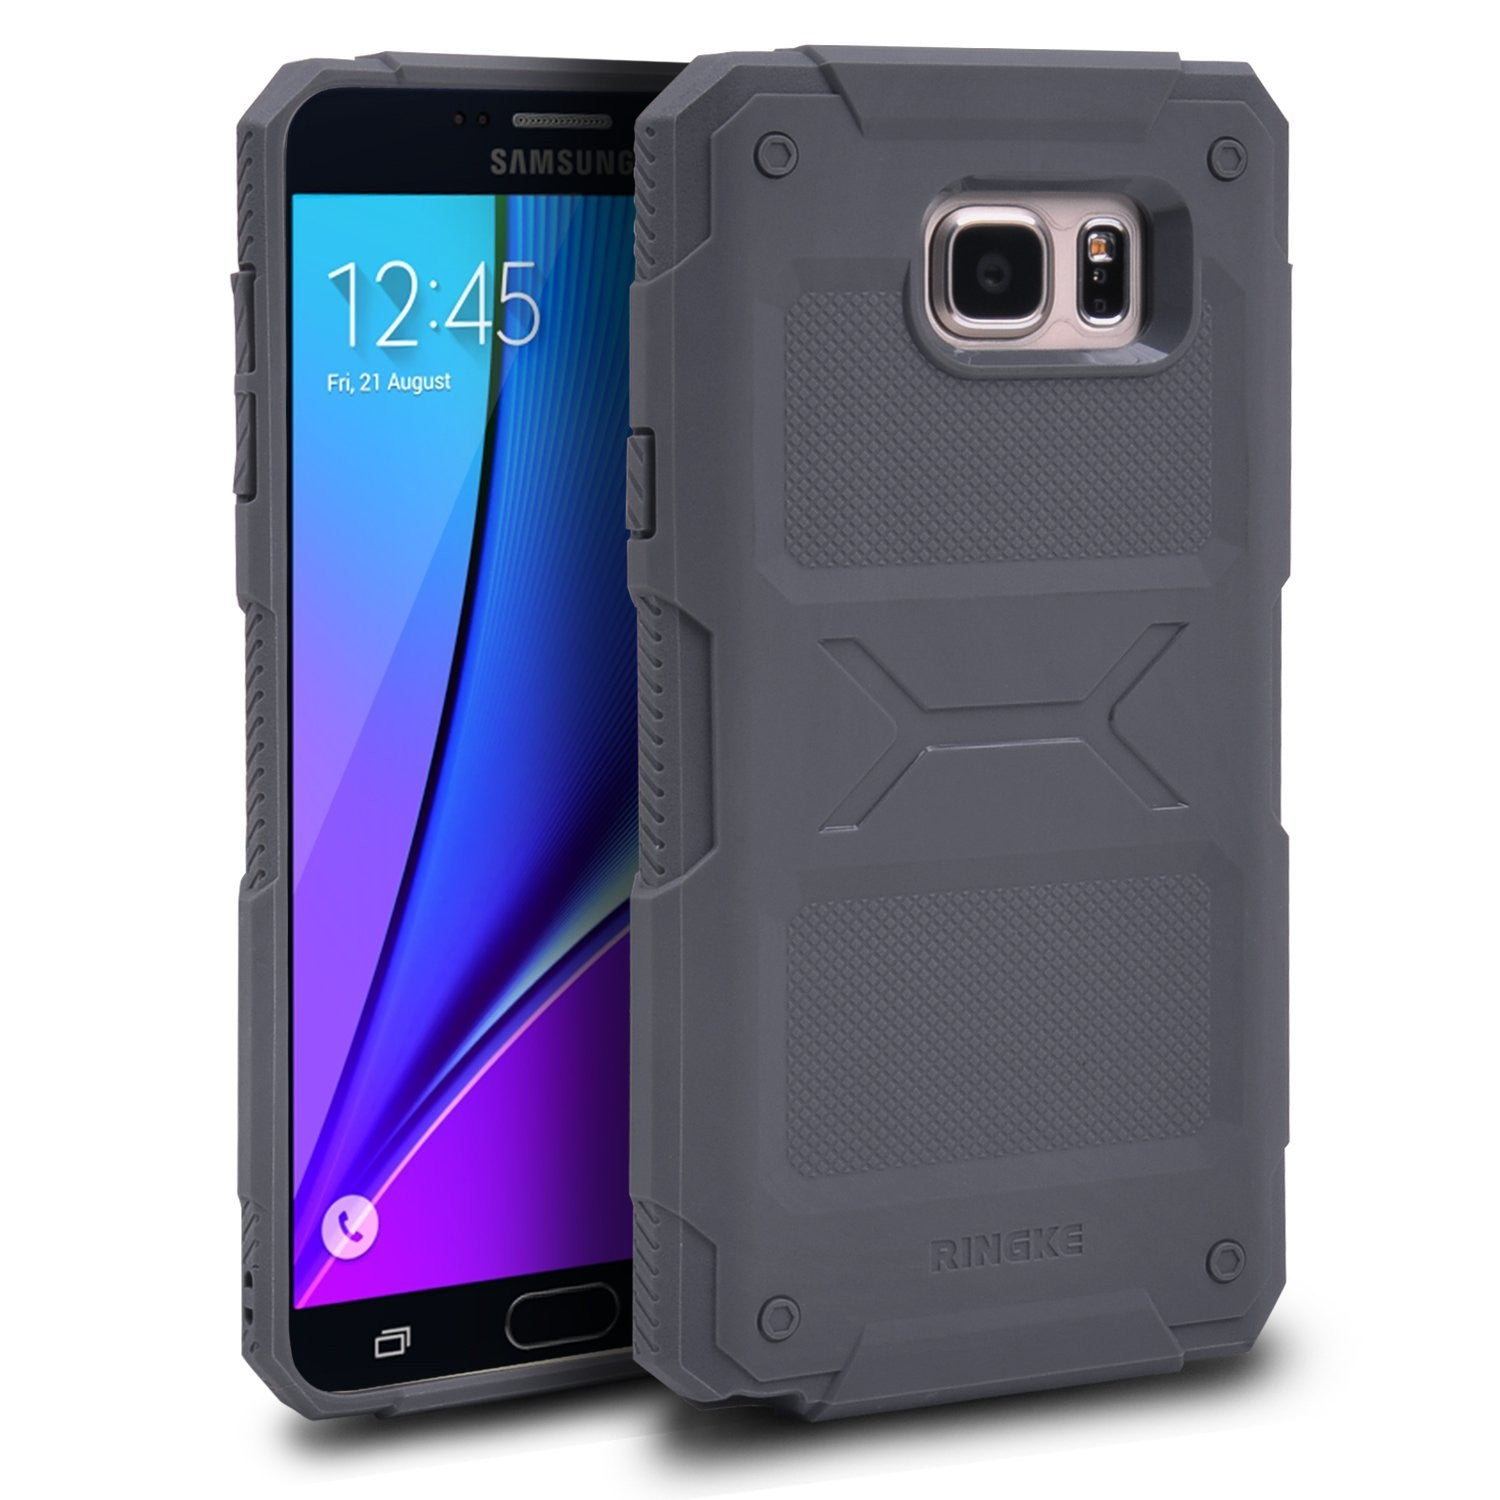 Galaxy Note 5 Case, Ringke®[REBEL] Flexible Durability and TPU Defensive Case